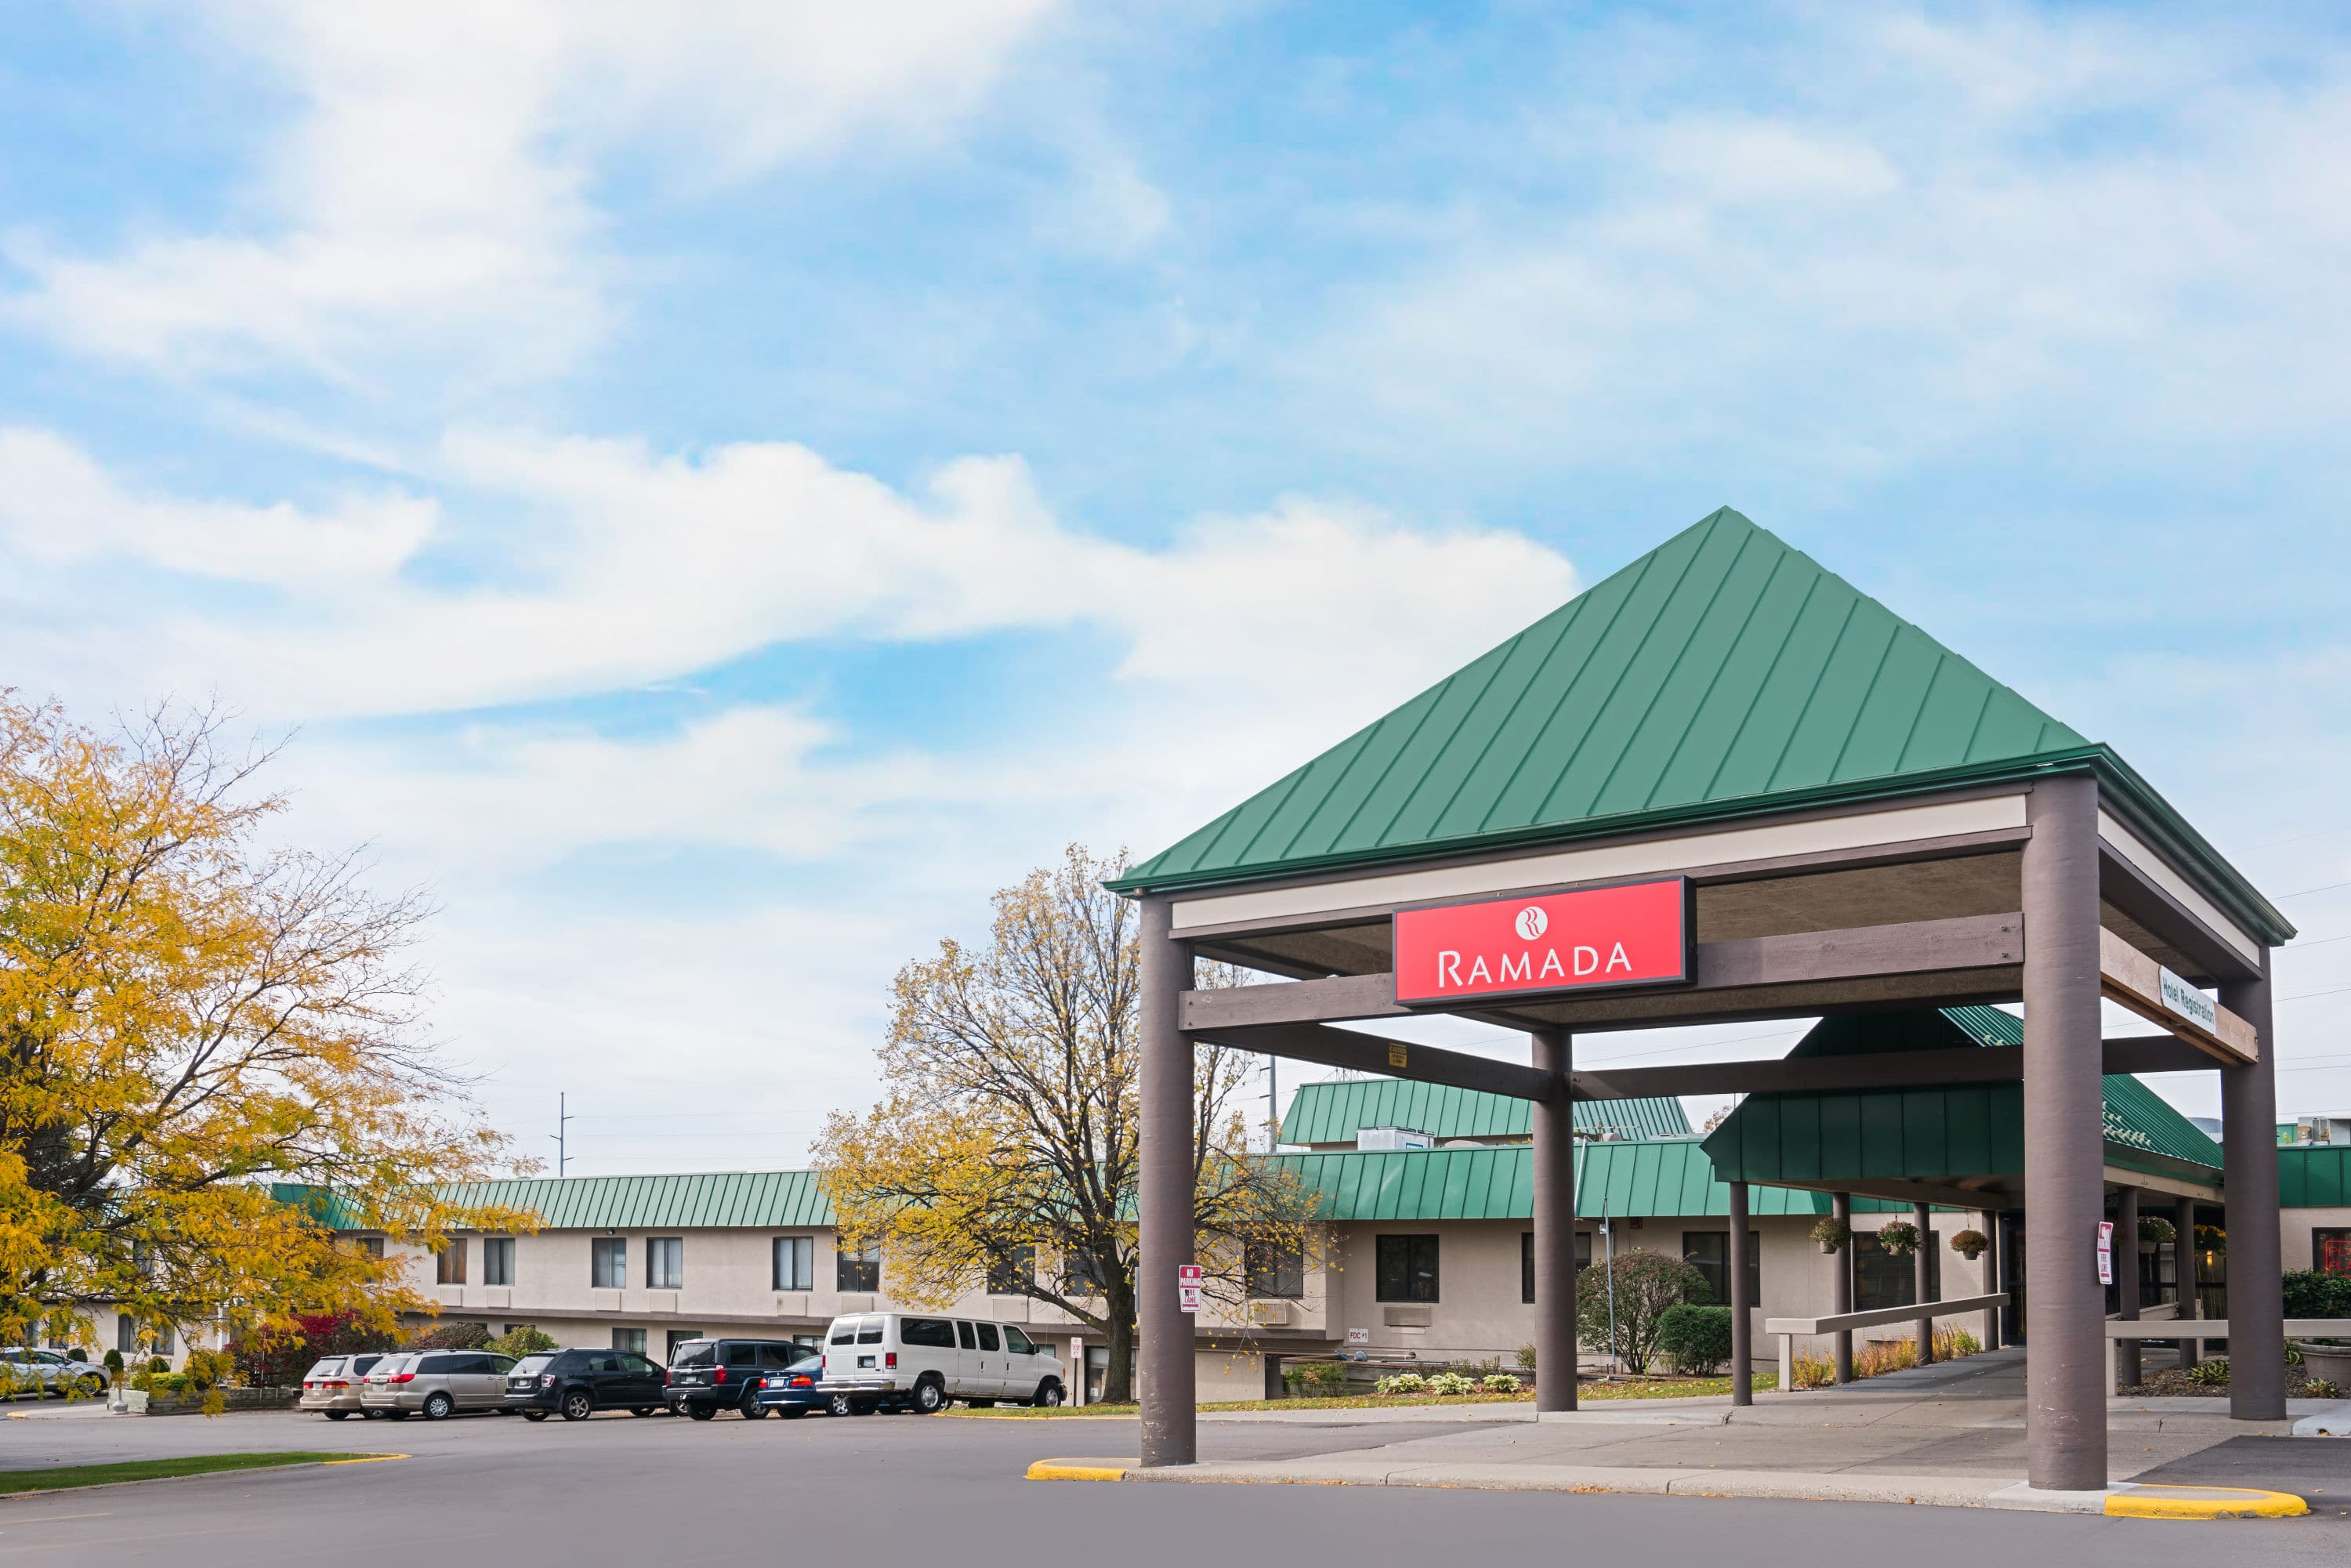 Ramada By Wyndham Plymouth Hotel U0026 Conference Center   Plymouth Hotels, MN  55441 3605